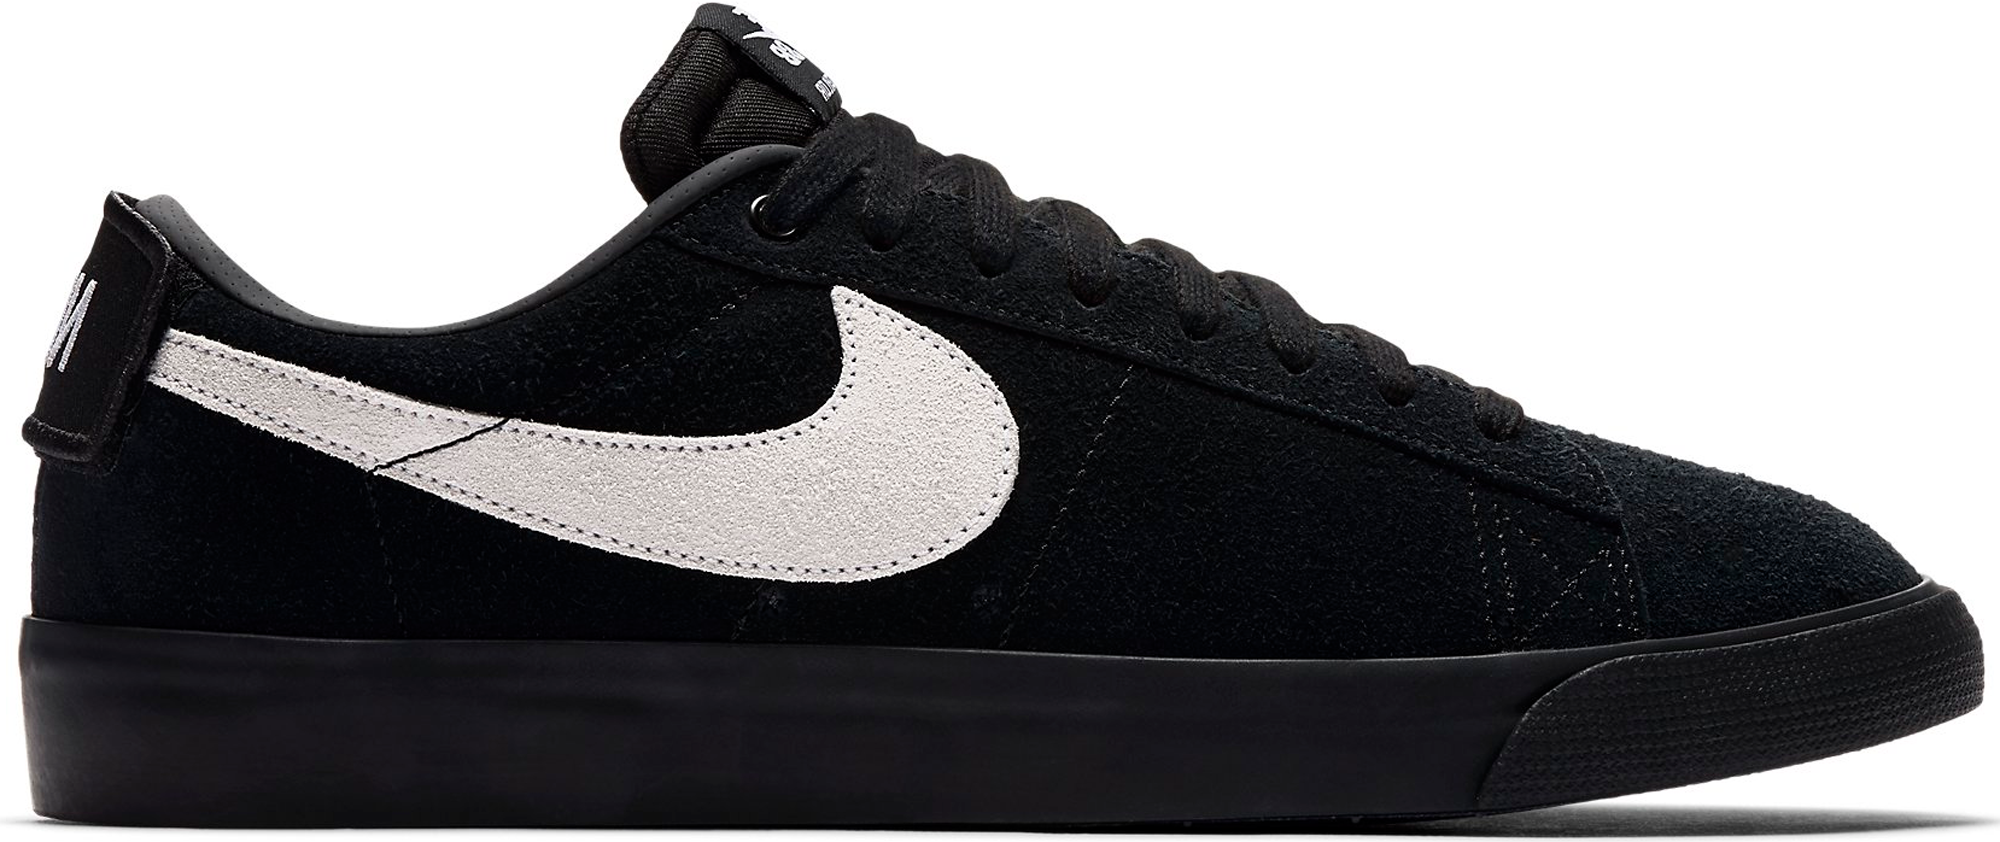 new product 20847 8ec53 ... ireland nike sb blazer zoom low gt black white c4305 2188d